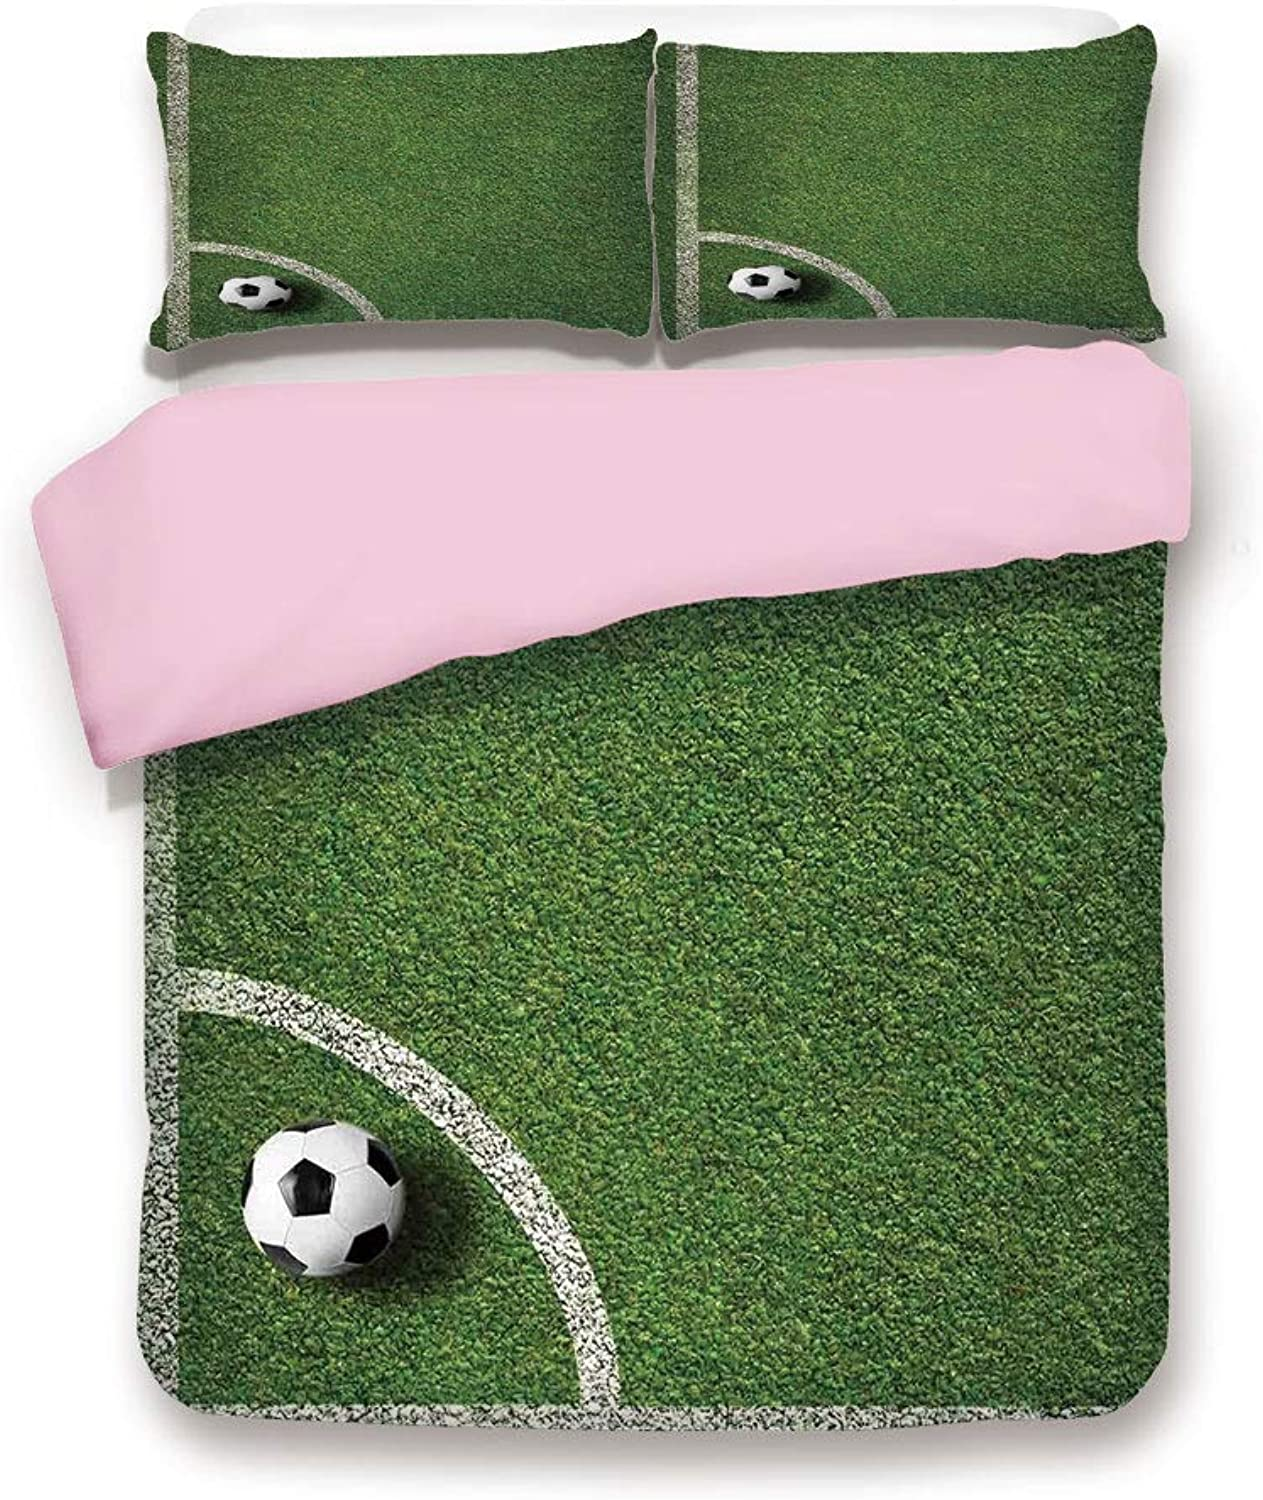 Pink Duvet Cover Set,Full Size,Soccer Ball in Corner Kick Position Football Field top View Grass Lawn Terrain,Decorative 3 Piece Bedding Set with 2 Pillow Sham,Best Gift for Girls Women,